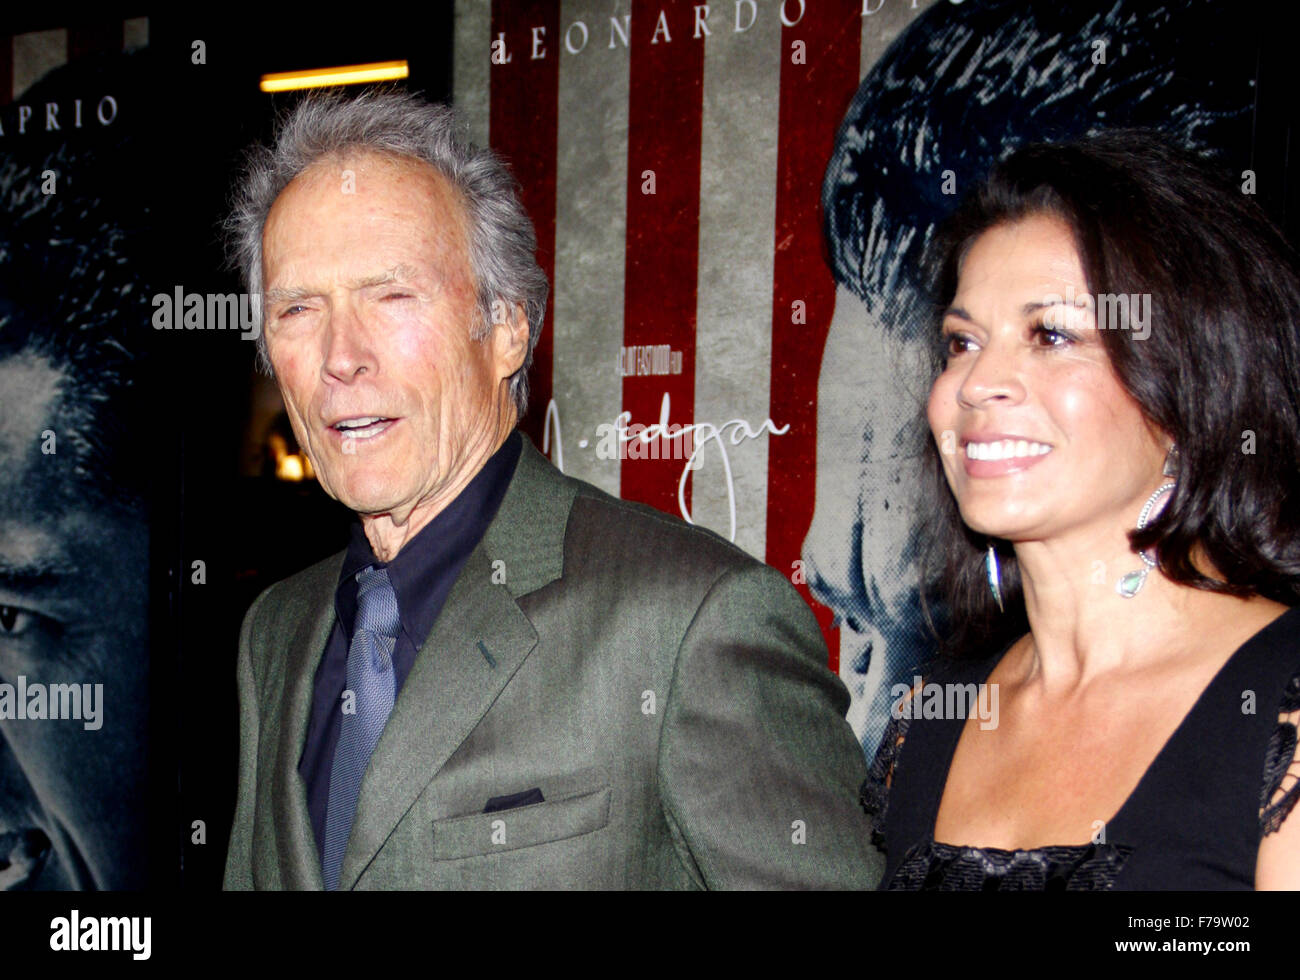 Clint Eastwood at the AFI Fest 2011 Opening Night Gala World Premiere Of 'J. Edgar' held at Grauman's - Stock Image